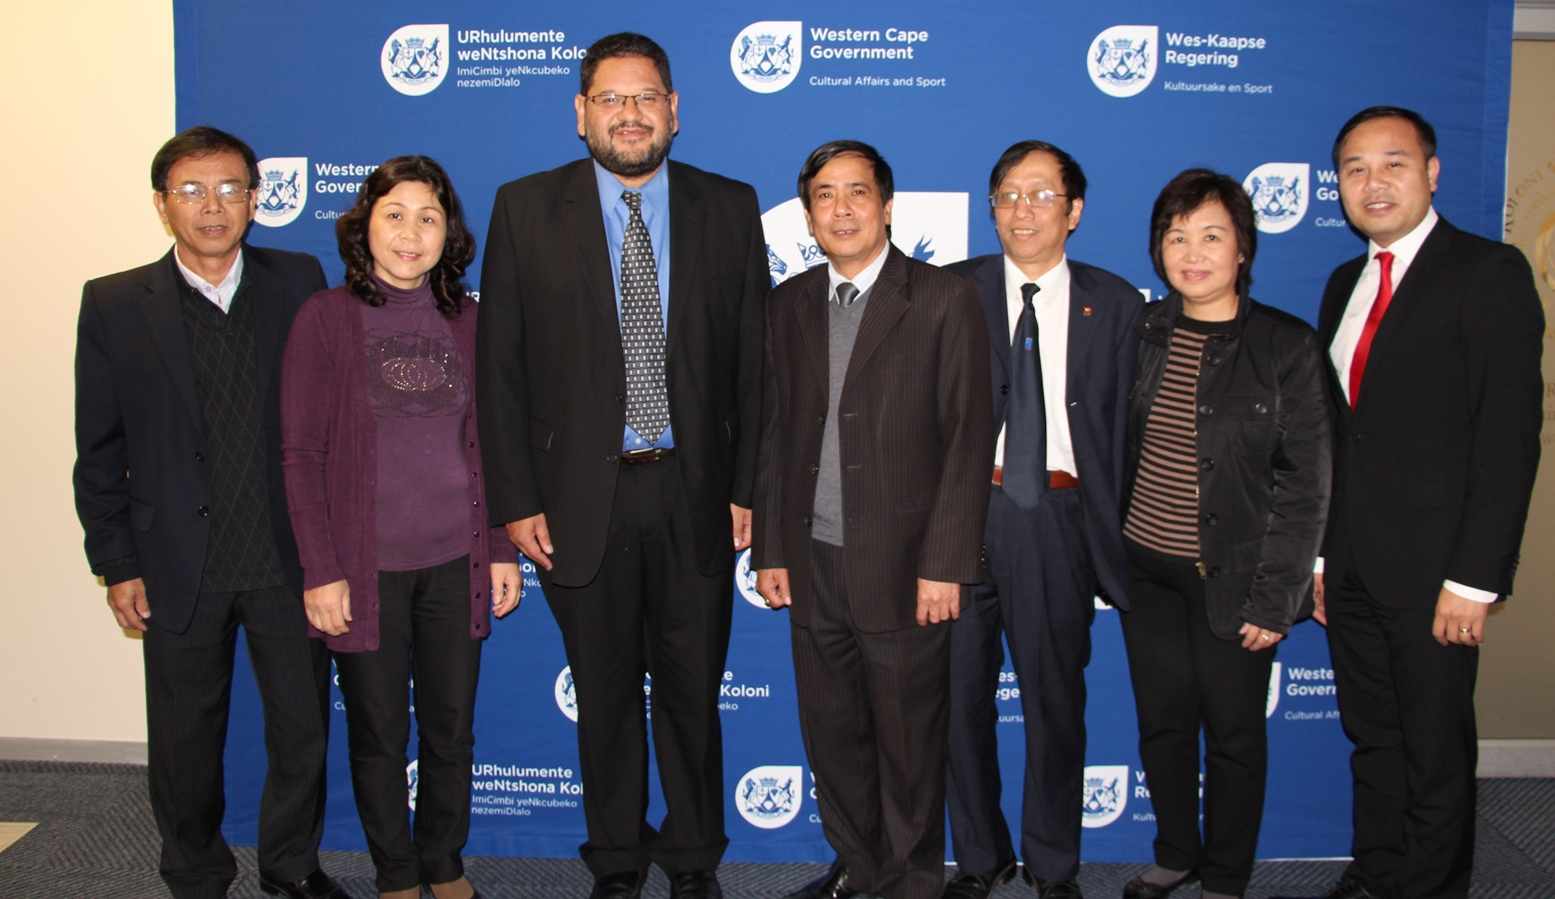 The Vietnam delegation with DCAS Head Mr Brent Walters.